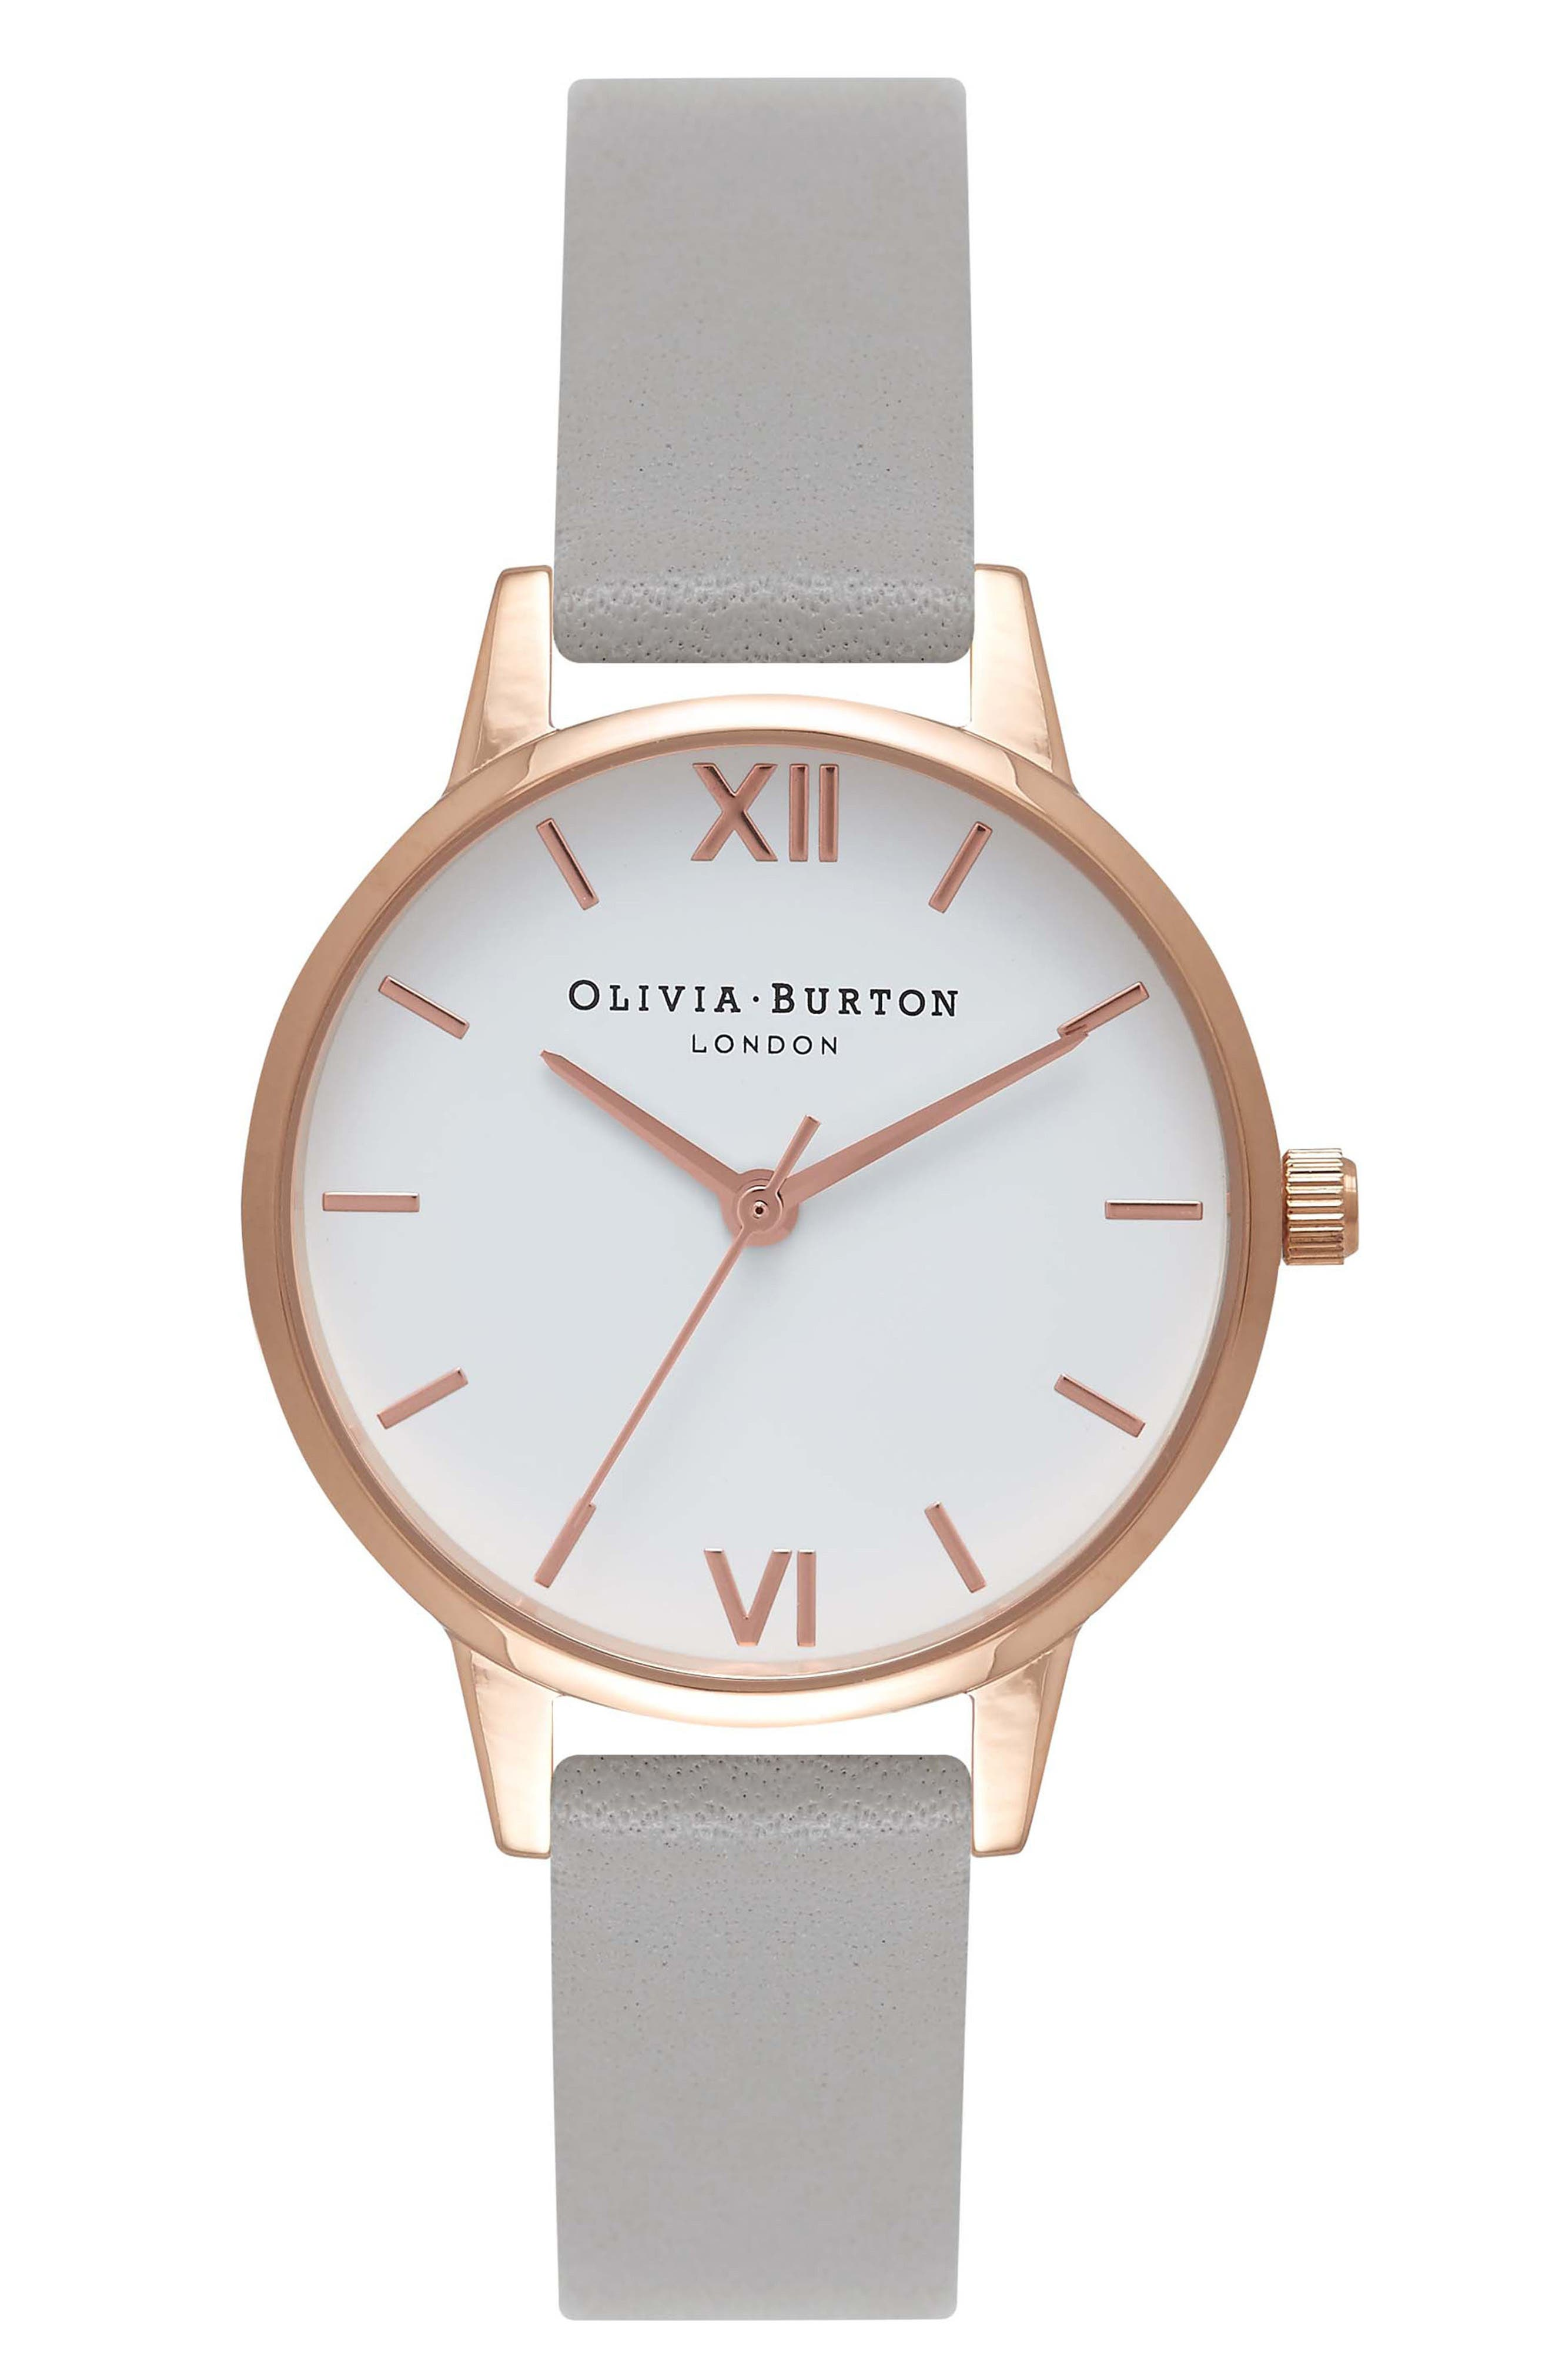 OLIVIA BURTON, Midi Dial Leather Strap Watch, 30mm, Main thumbnail 1, color, GREY/ WHITE/ ROSE GOLD